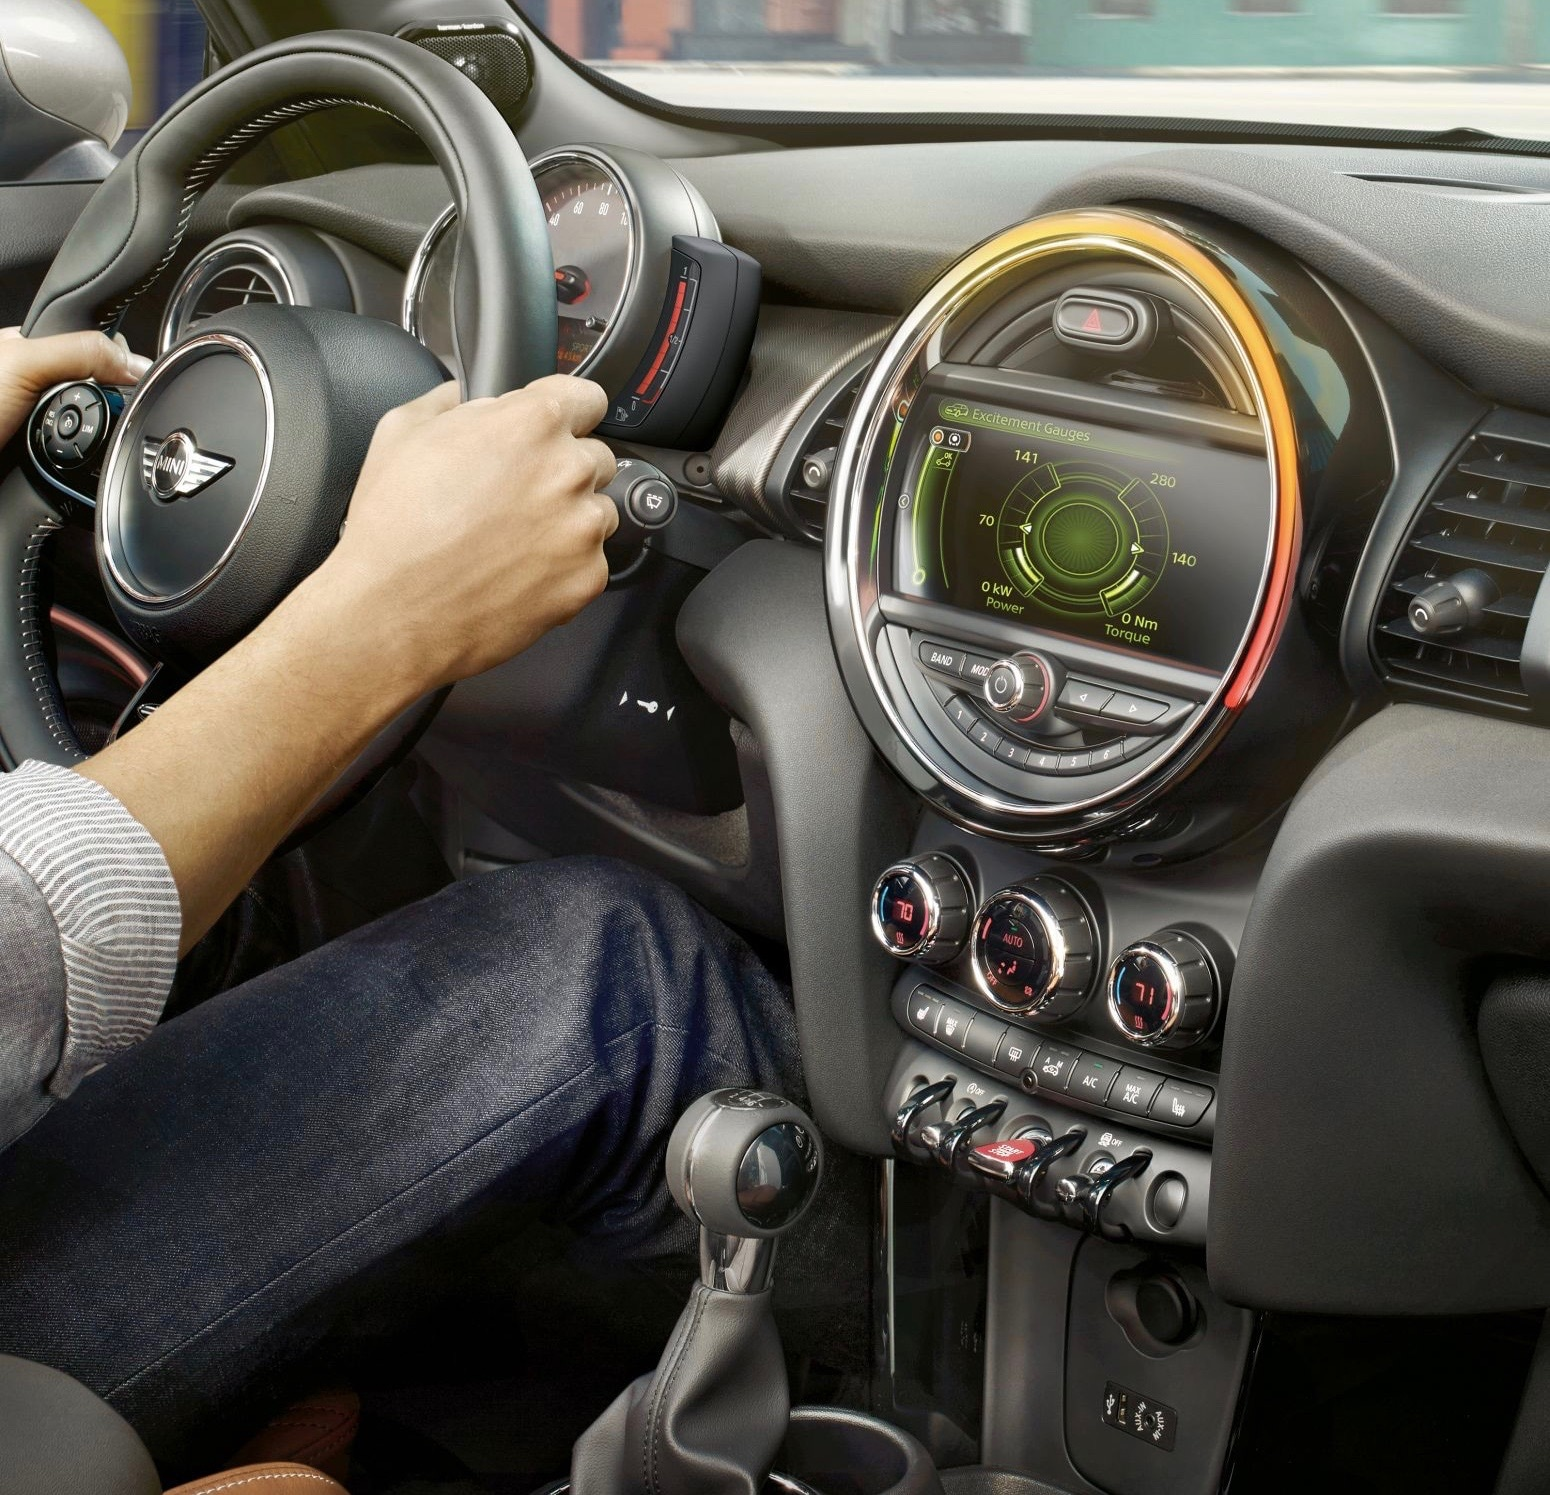 The Keys To The Future Mini Bmw Apple Partner Up To Discuss